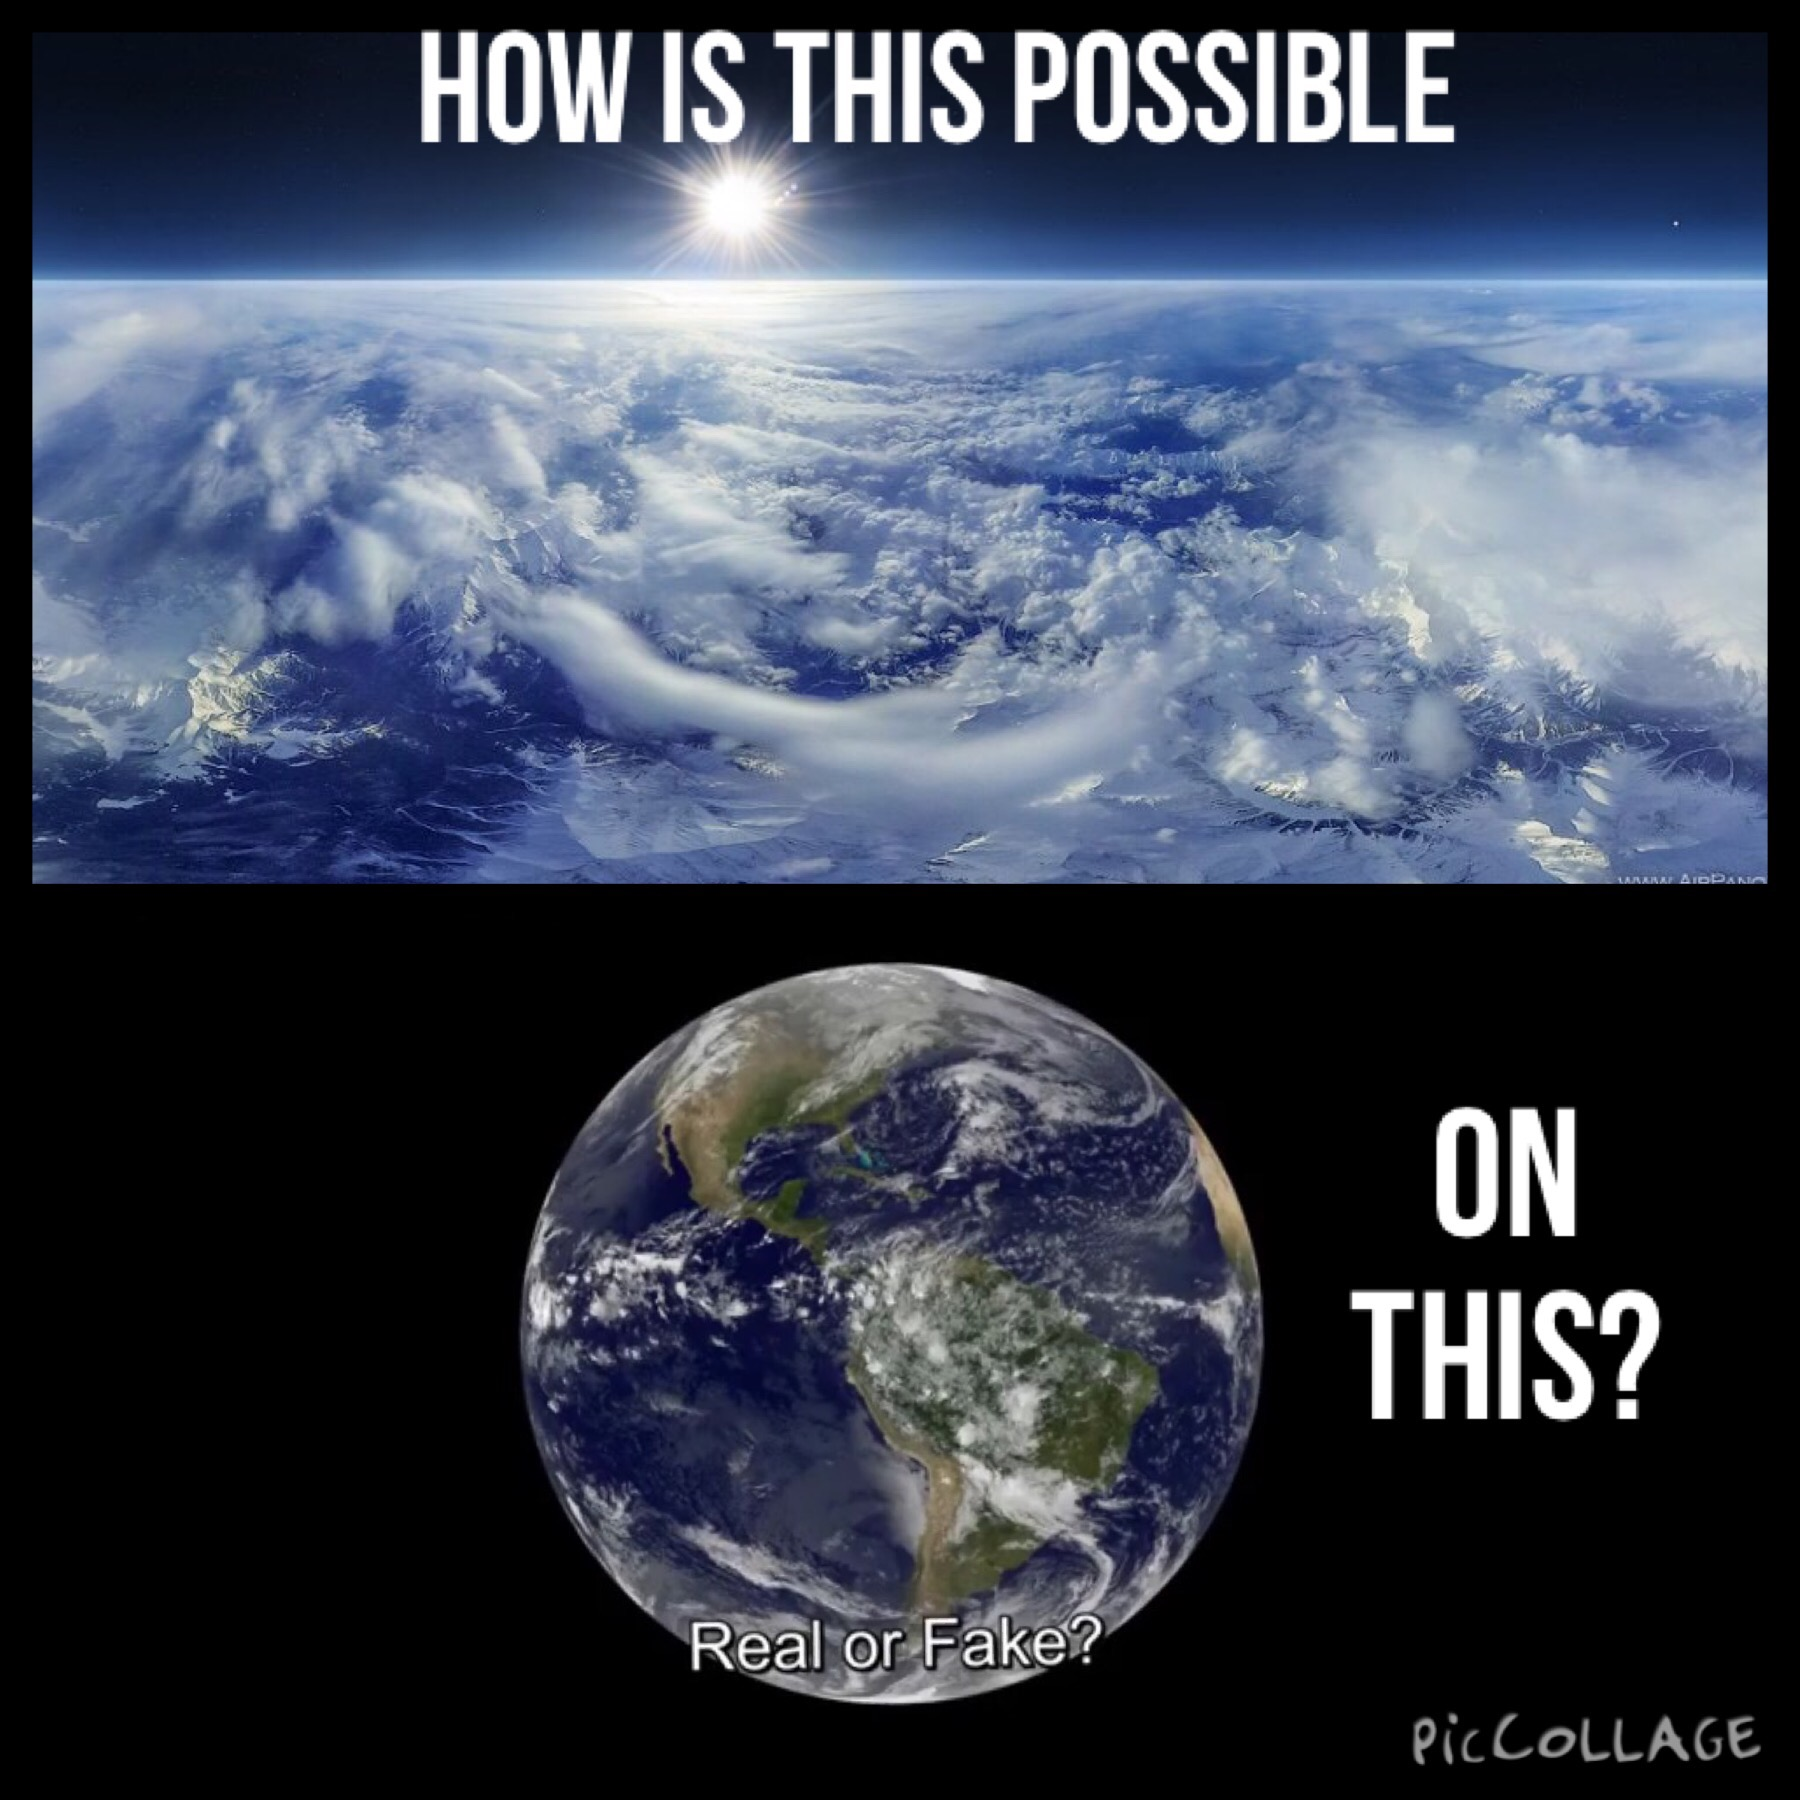 Defenders Of Flat Earth Theory Mutually